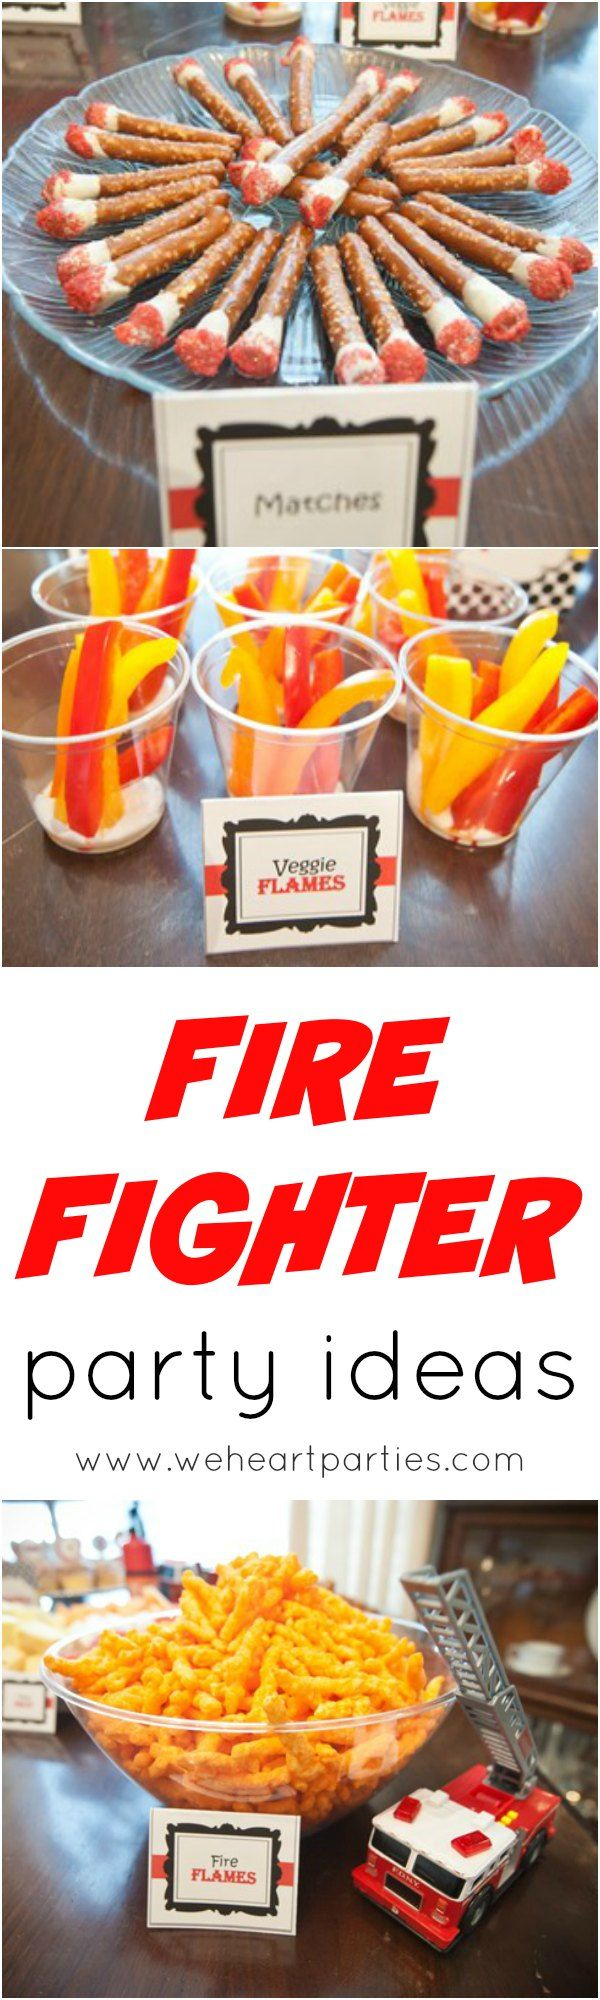 Easy Fire Truck Party Ideas